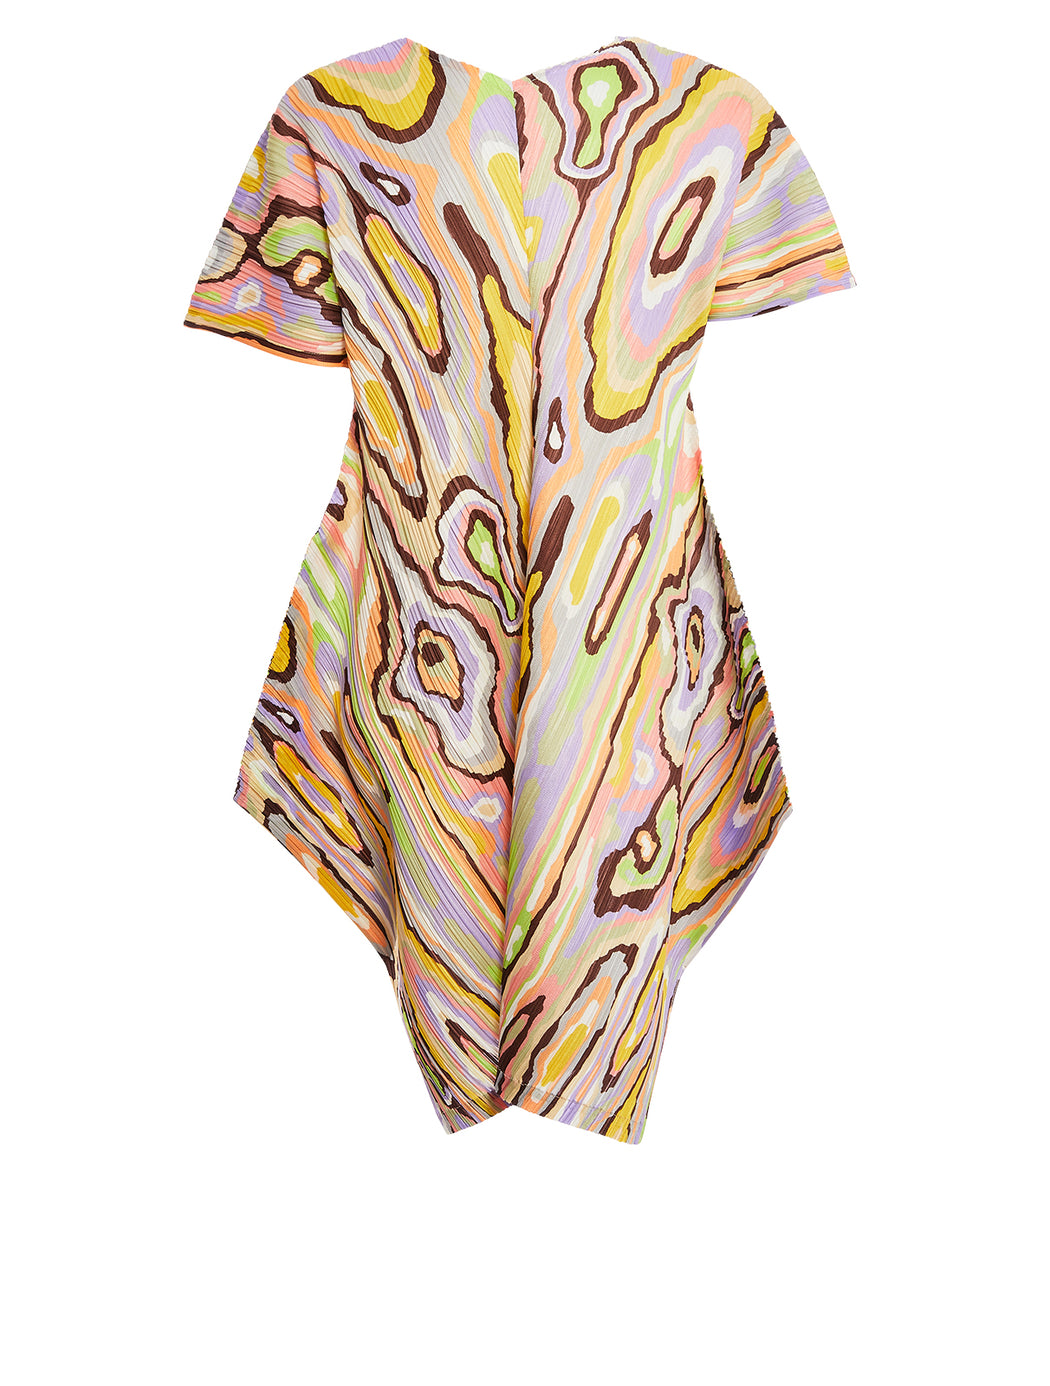 Pastel Wooden Grain Printed Short Dress